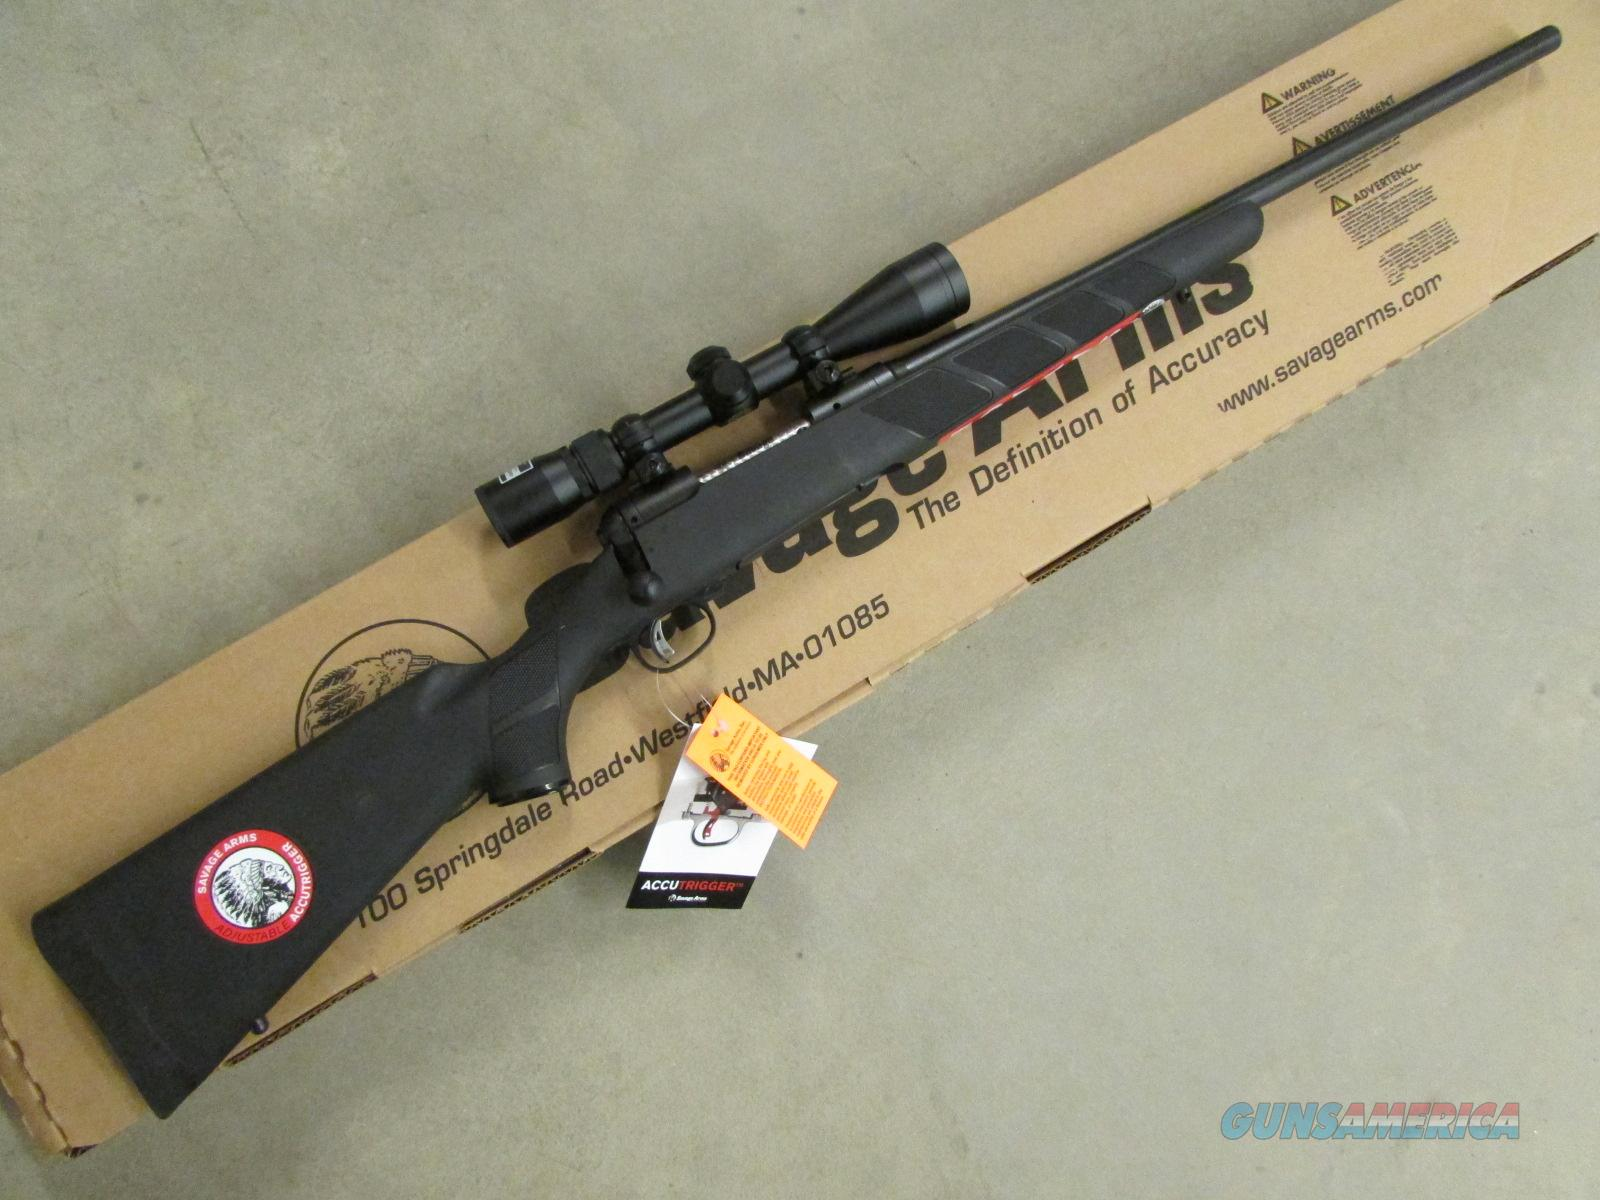 6.5 creedmoor for deer hunting forum